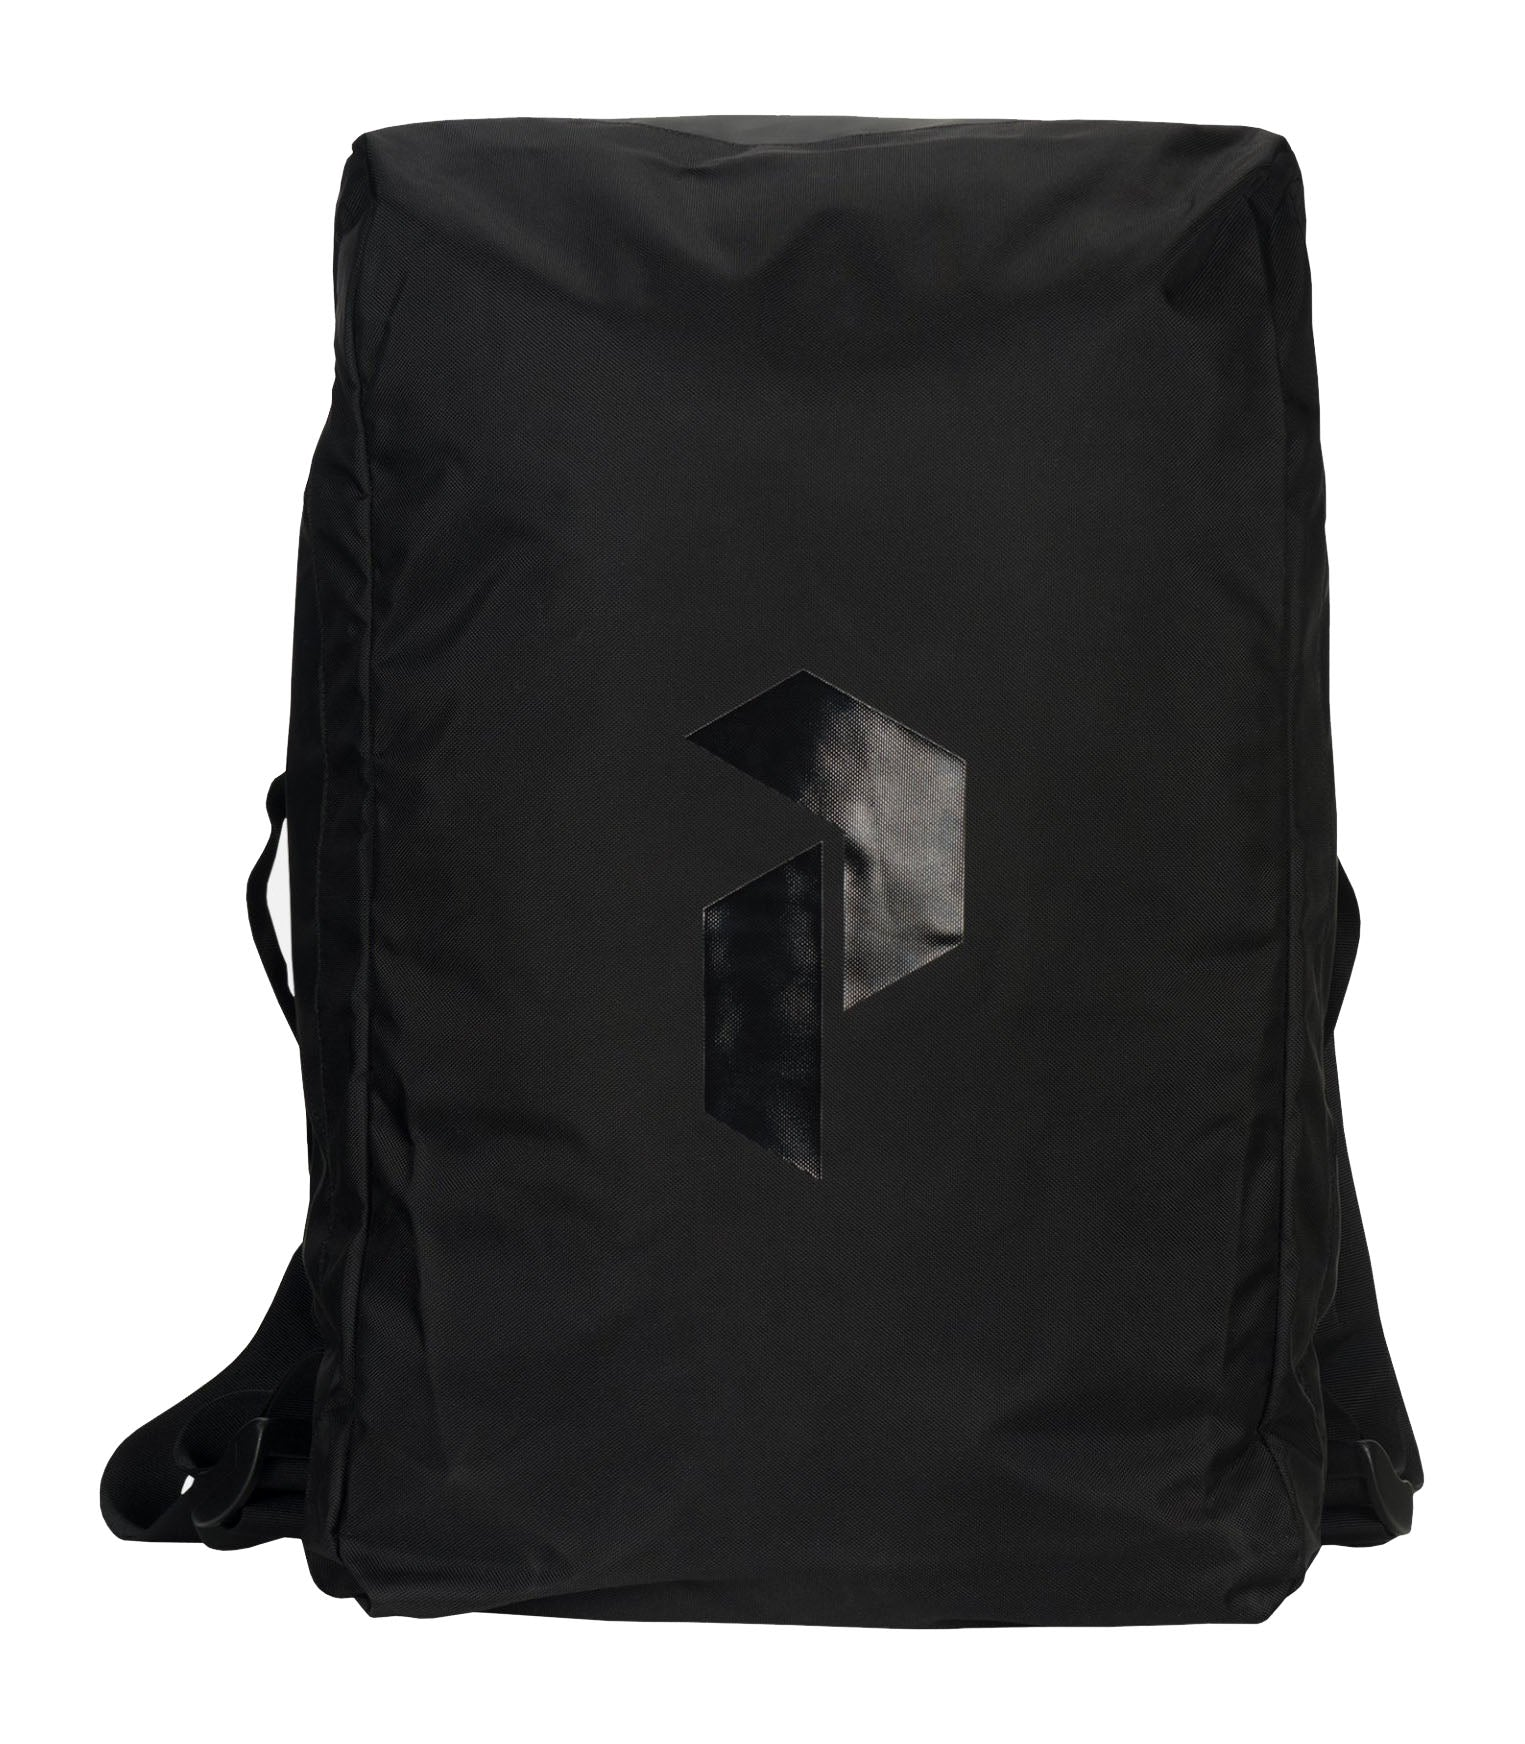 Peak Performance Vertical 70 Duffelbag